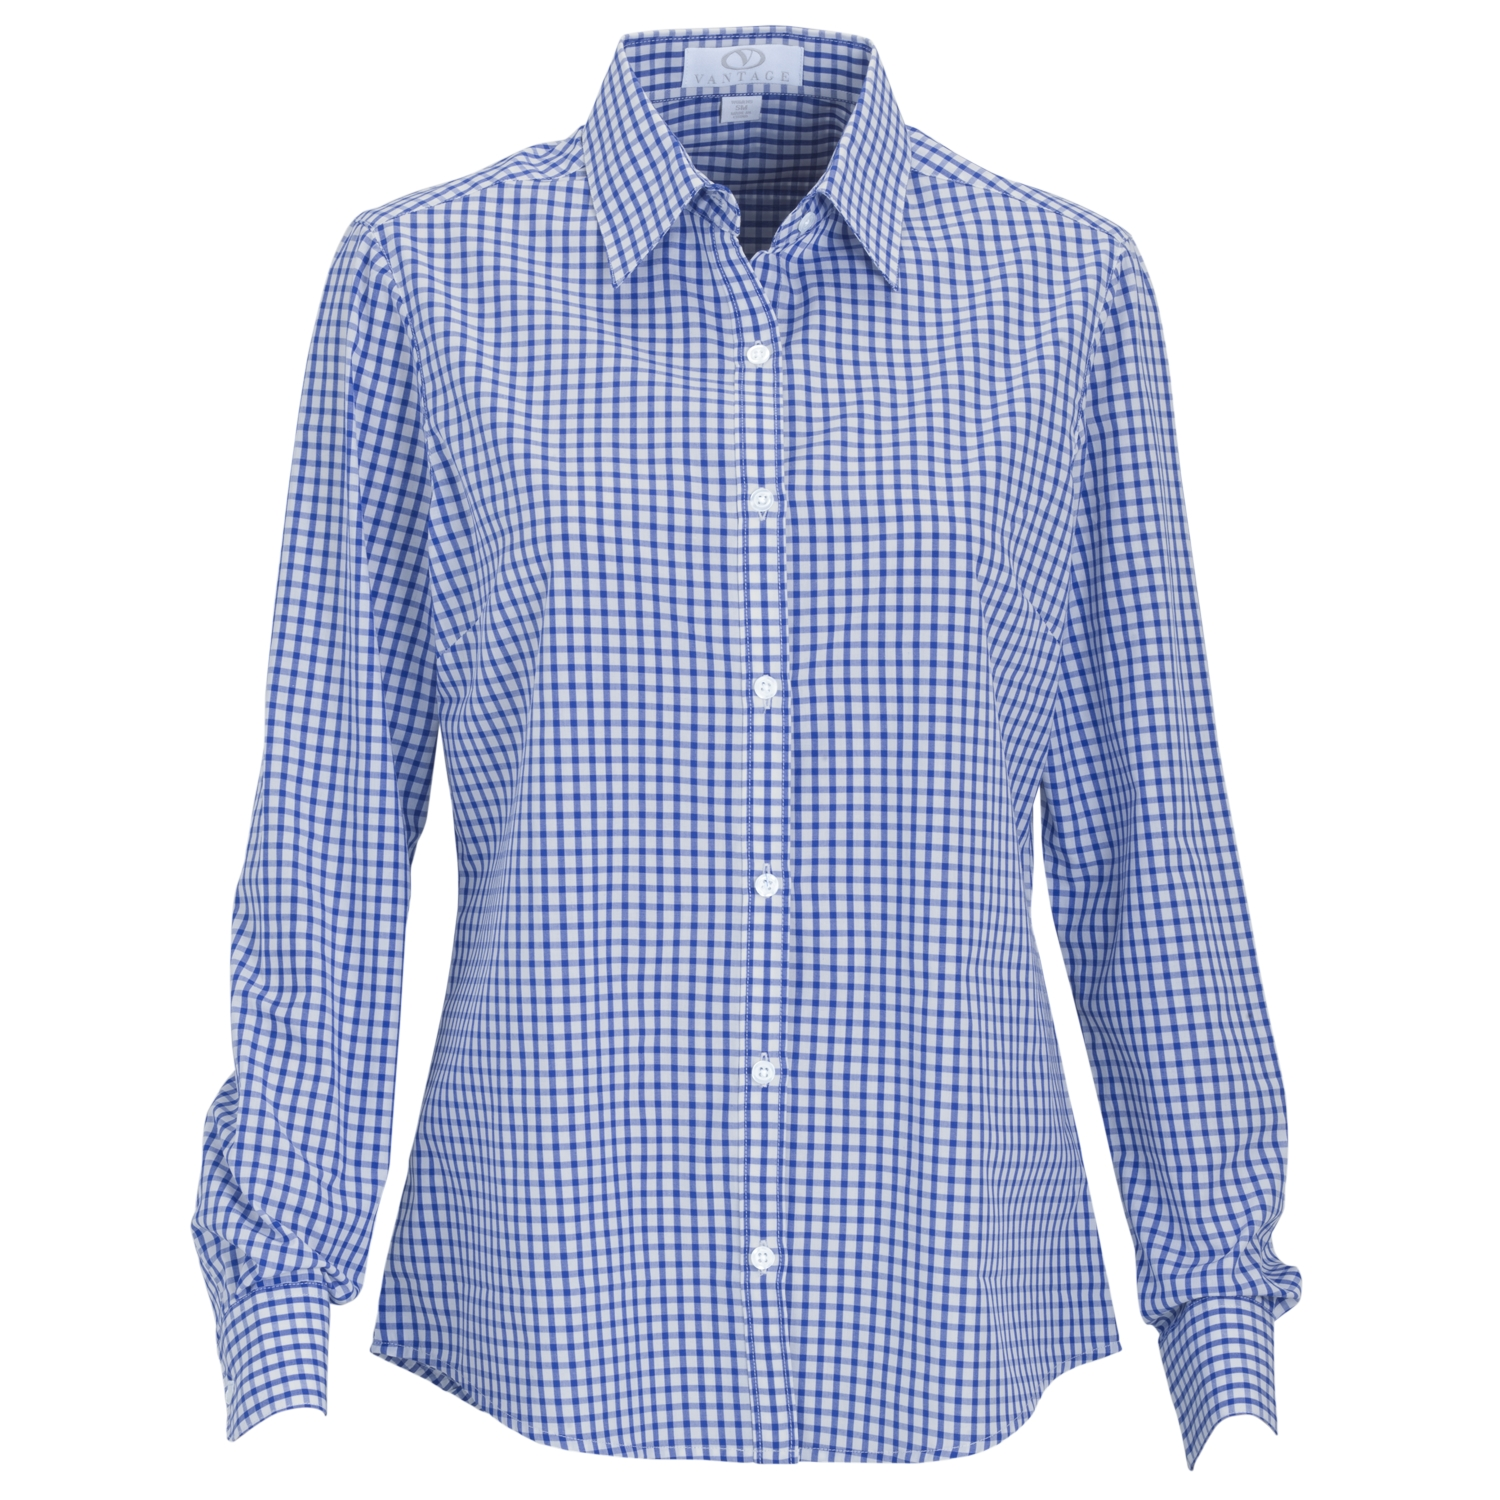 Vantage 1108 - Women's Easy-Care Gingham Check Shirt